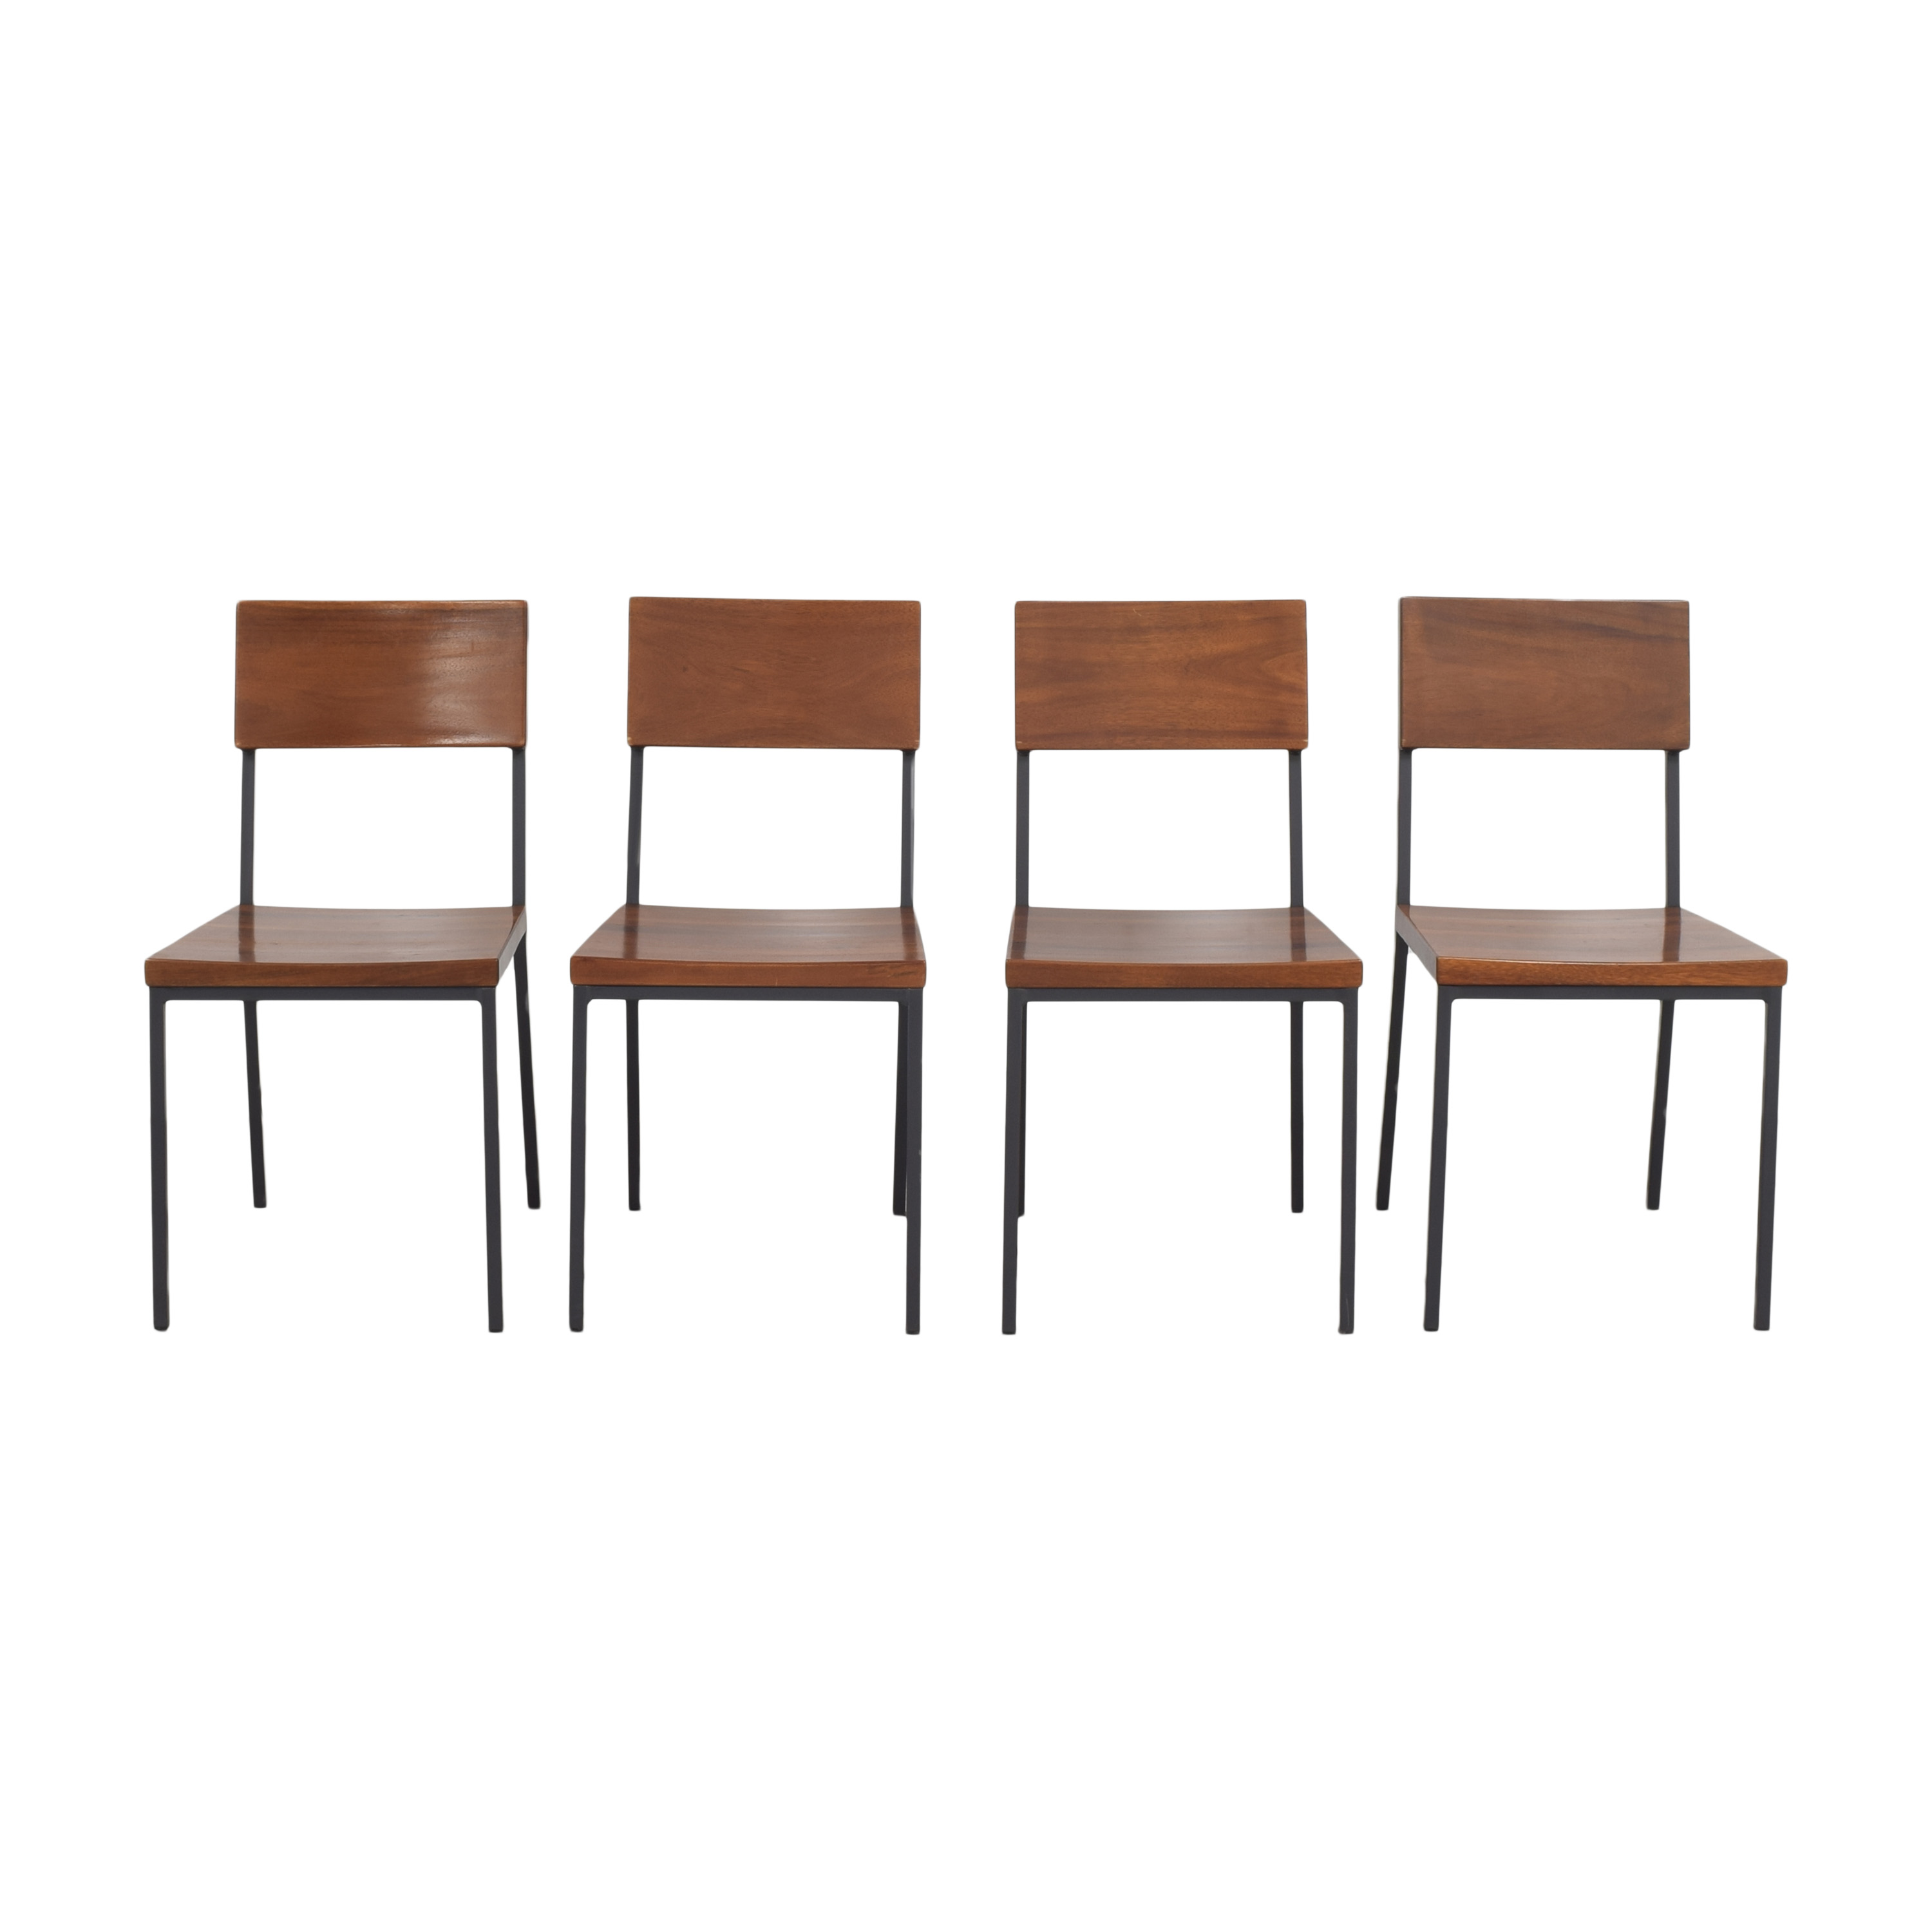 West Elm West Elm Augusta Rustic Dining Chairs ct